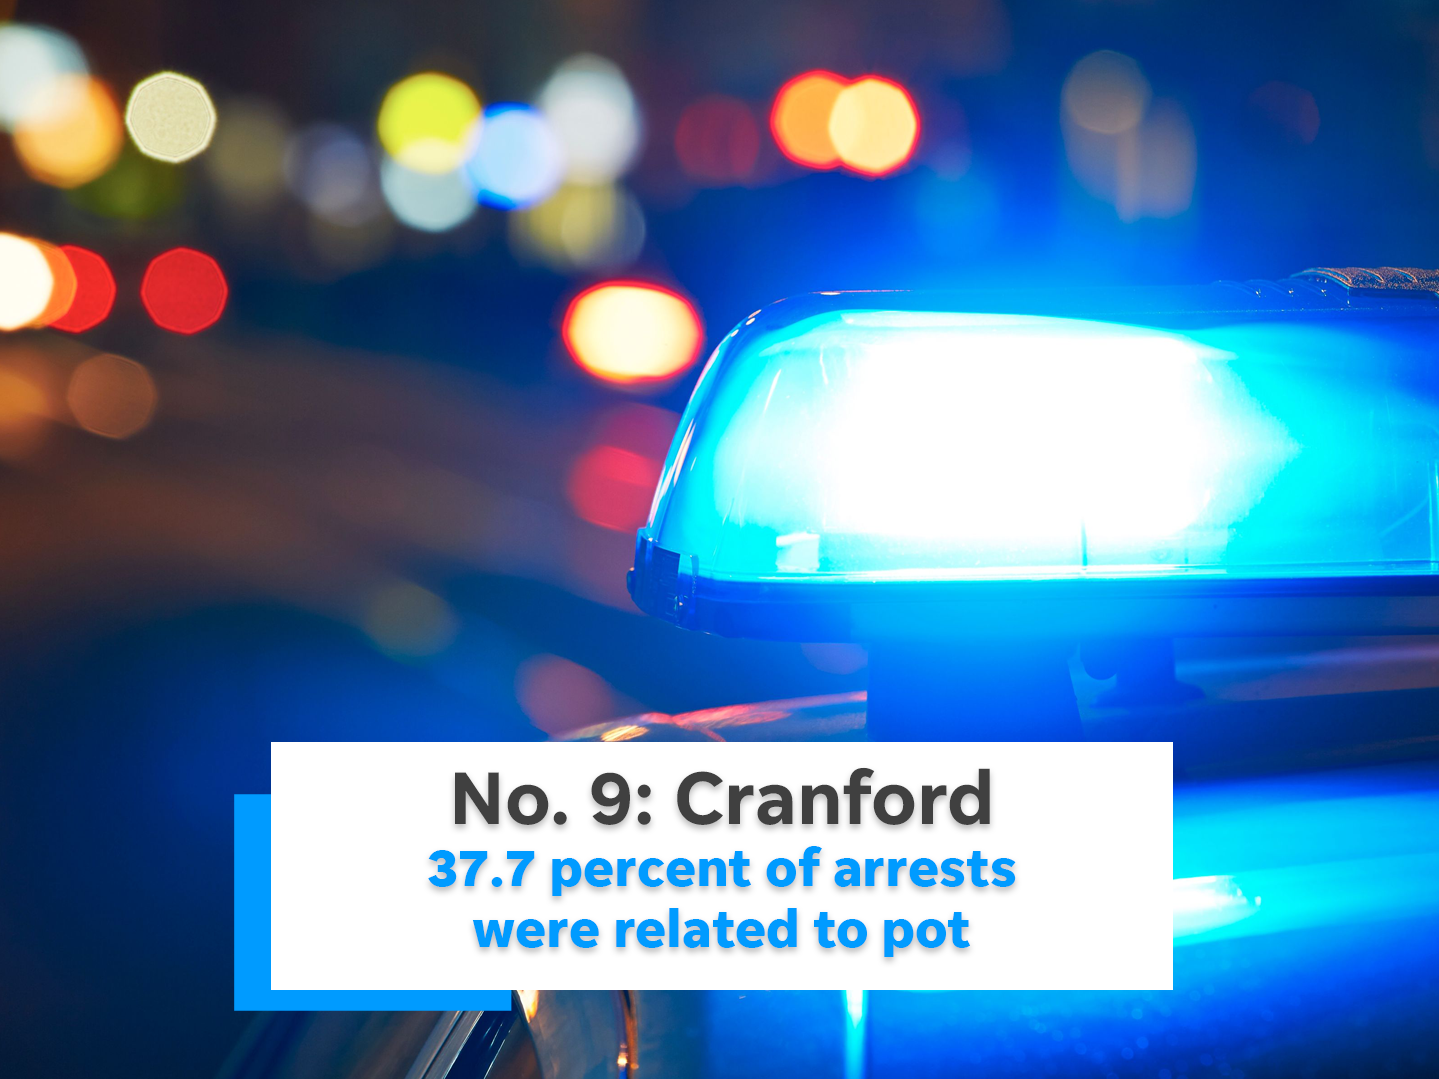 37.7 percent of Cranford's arrests were related to marijuana.